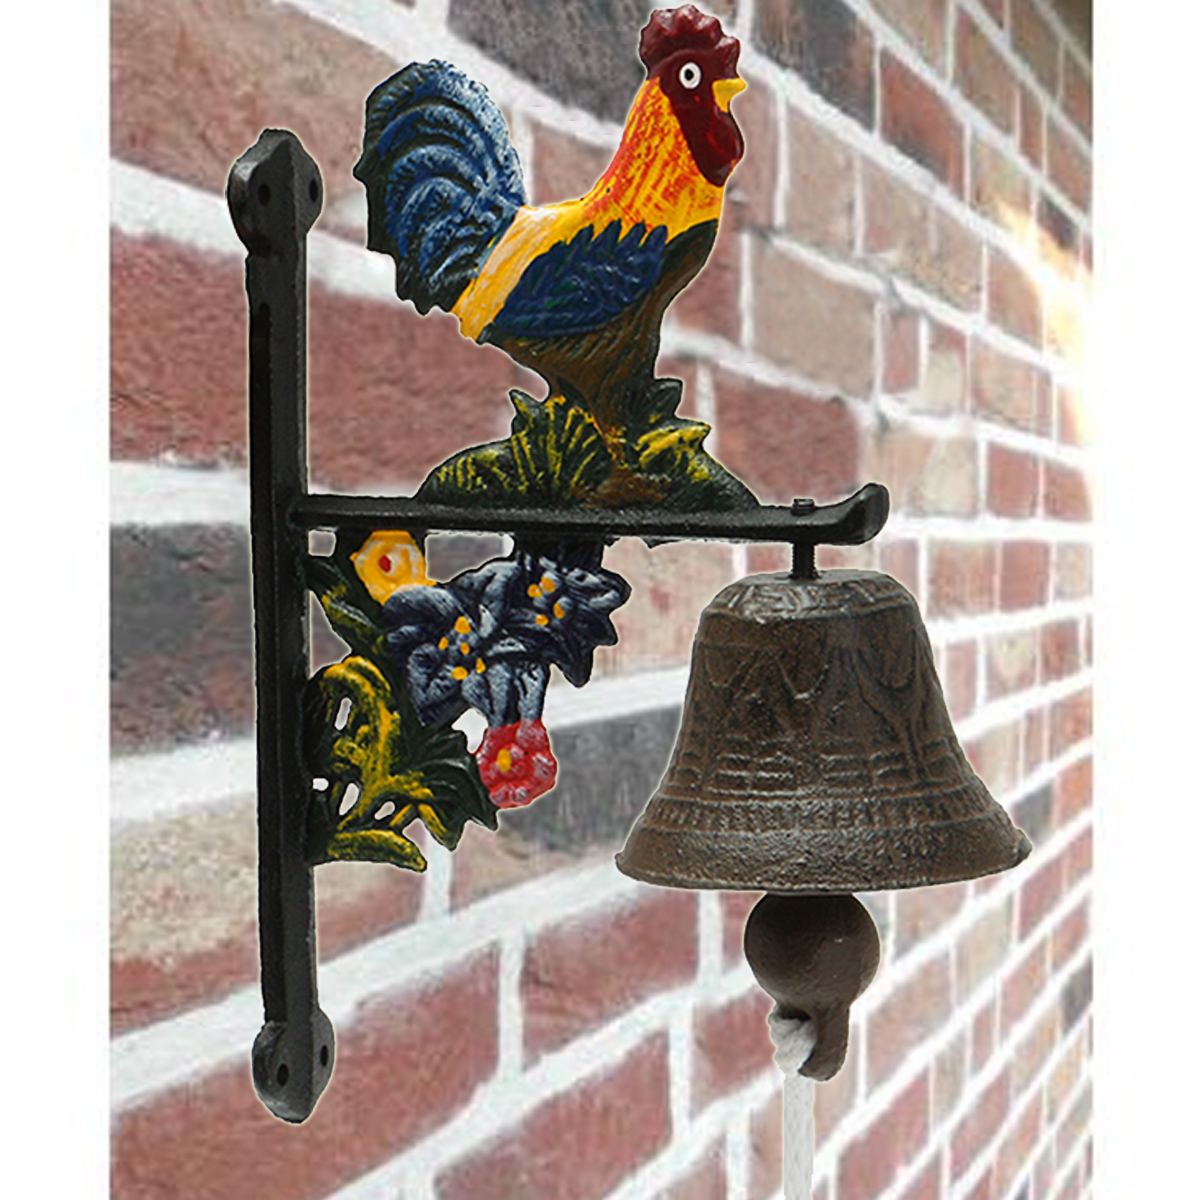 NEW Vintage Style Metal Cast Iron Rooster Door Bell Wall Mounted Home Garden Decor Access Control